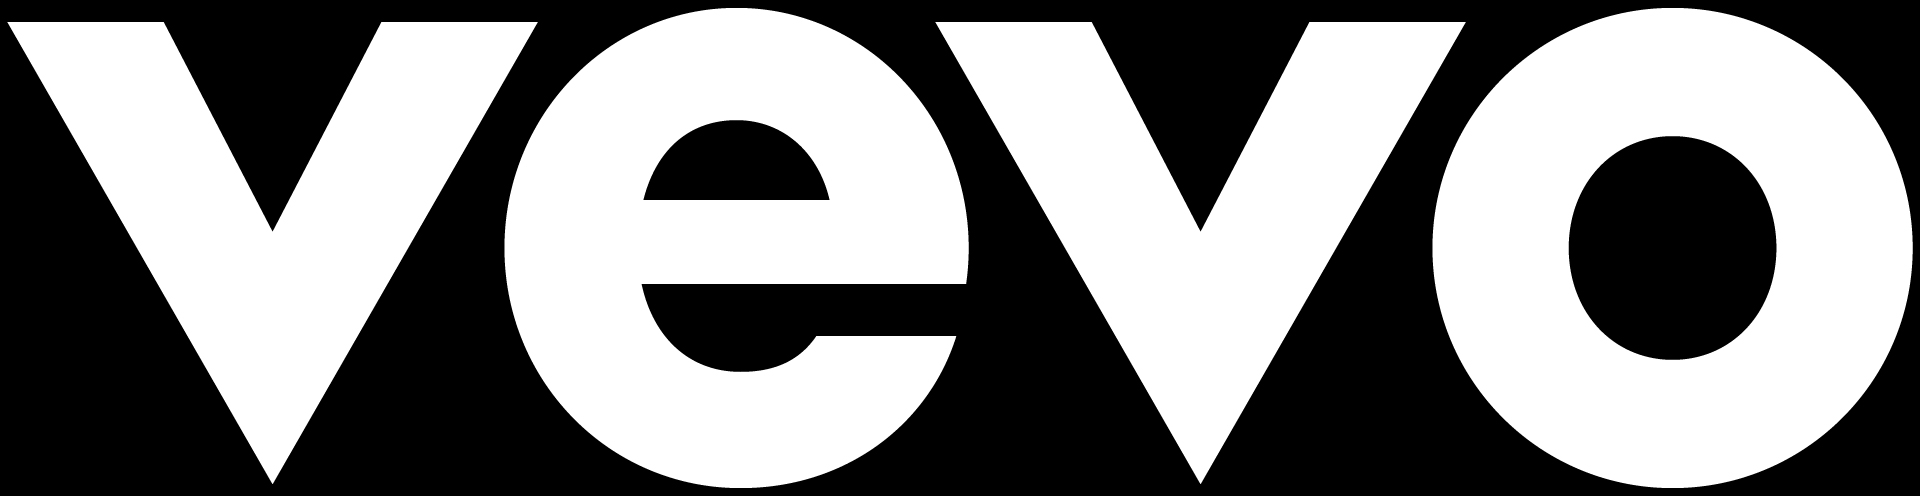 Vevo confirms product and engineering layoffs as CTO leaves.